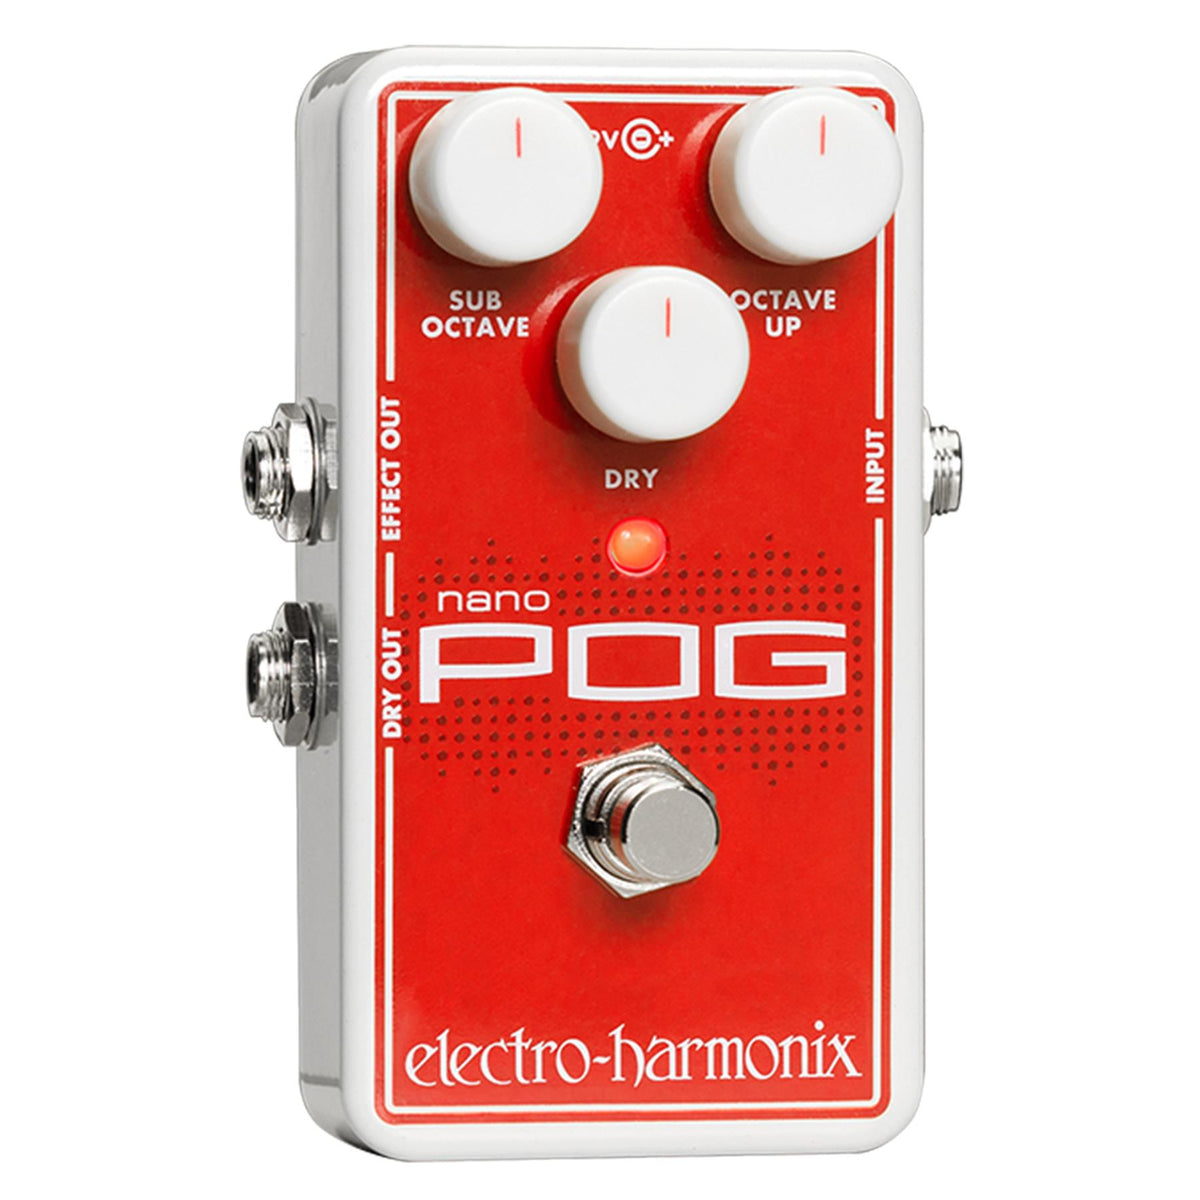 Electro-Harmonix Nano Pog Polyphonic Octave Generator Guitar Effects Pedal with 9.6V Power Supply